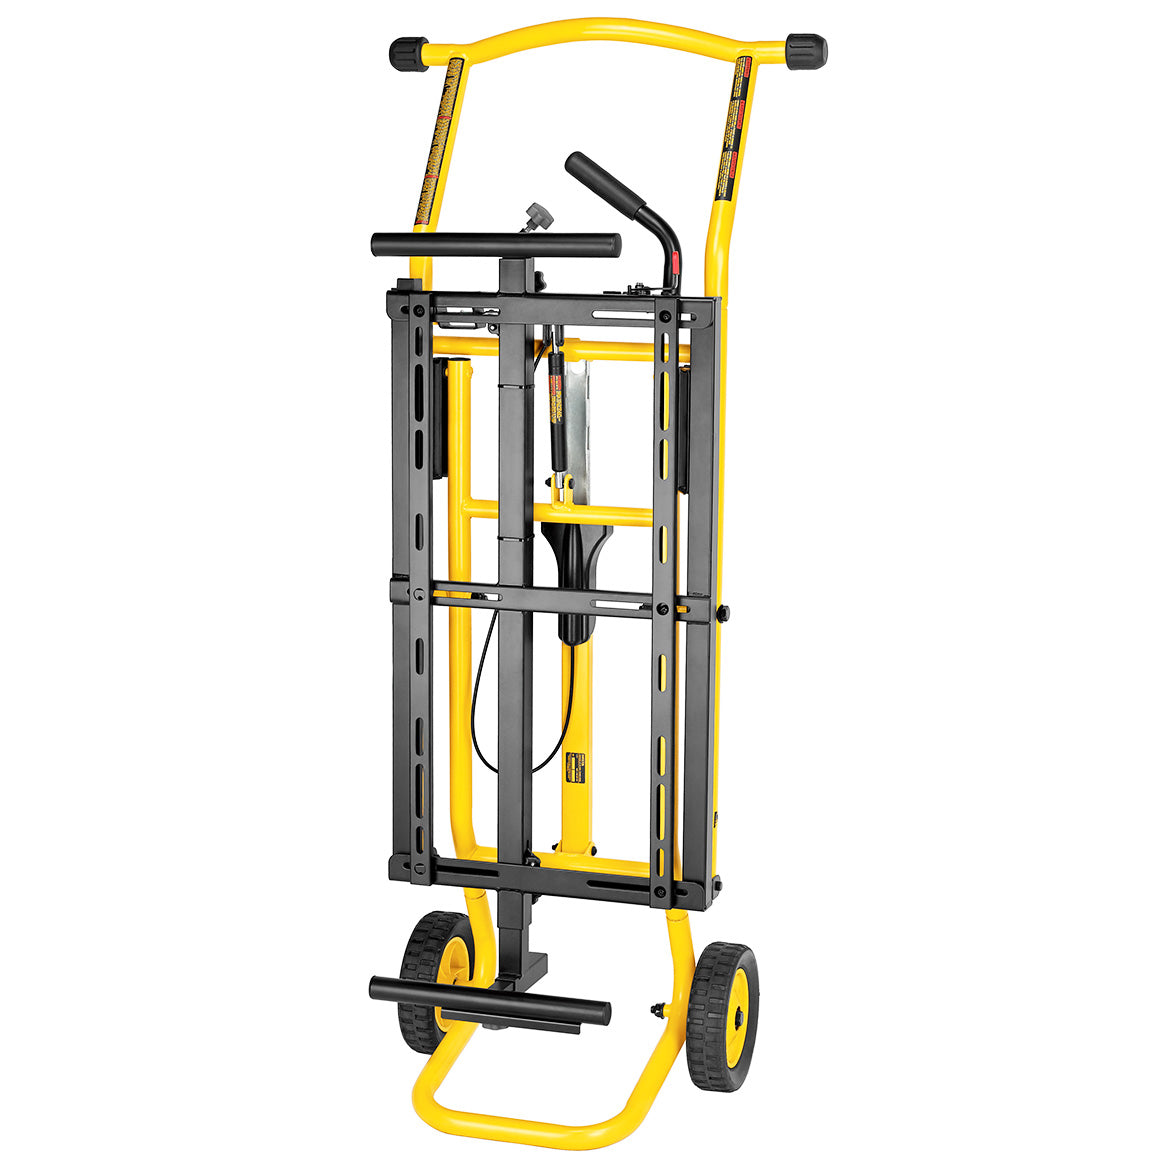 Dewalt Dwx726 Portable Rolling Miter Saw Stand W In Out